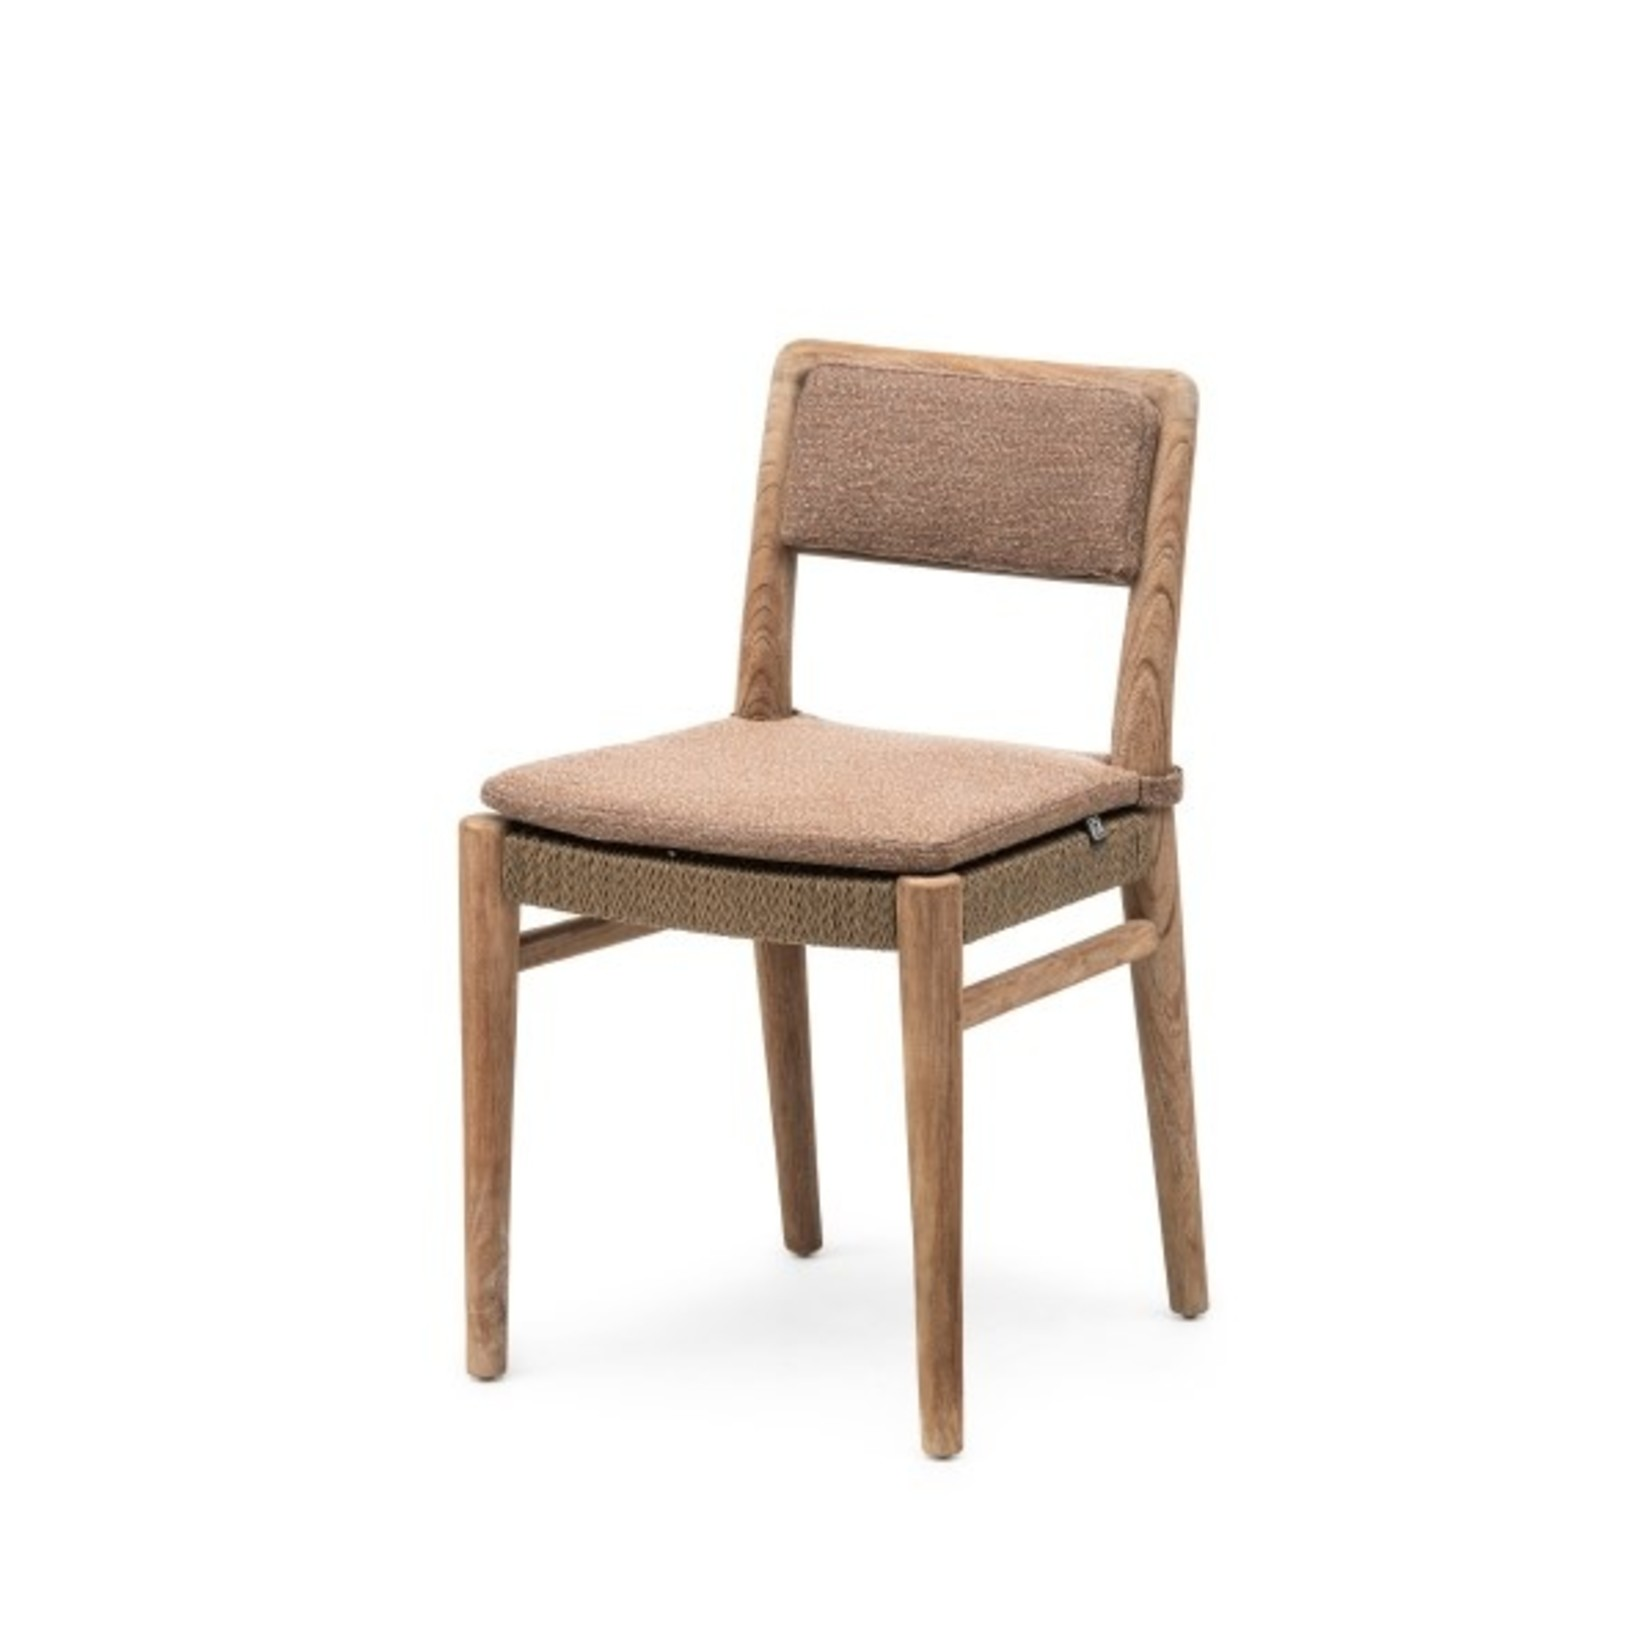 Gommaire Chair Jared | Teak Natural Gray / PE Wicker Antique Weed